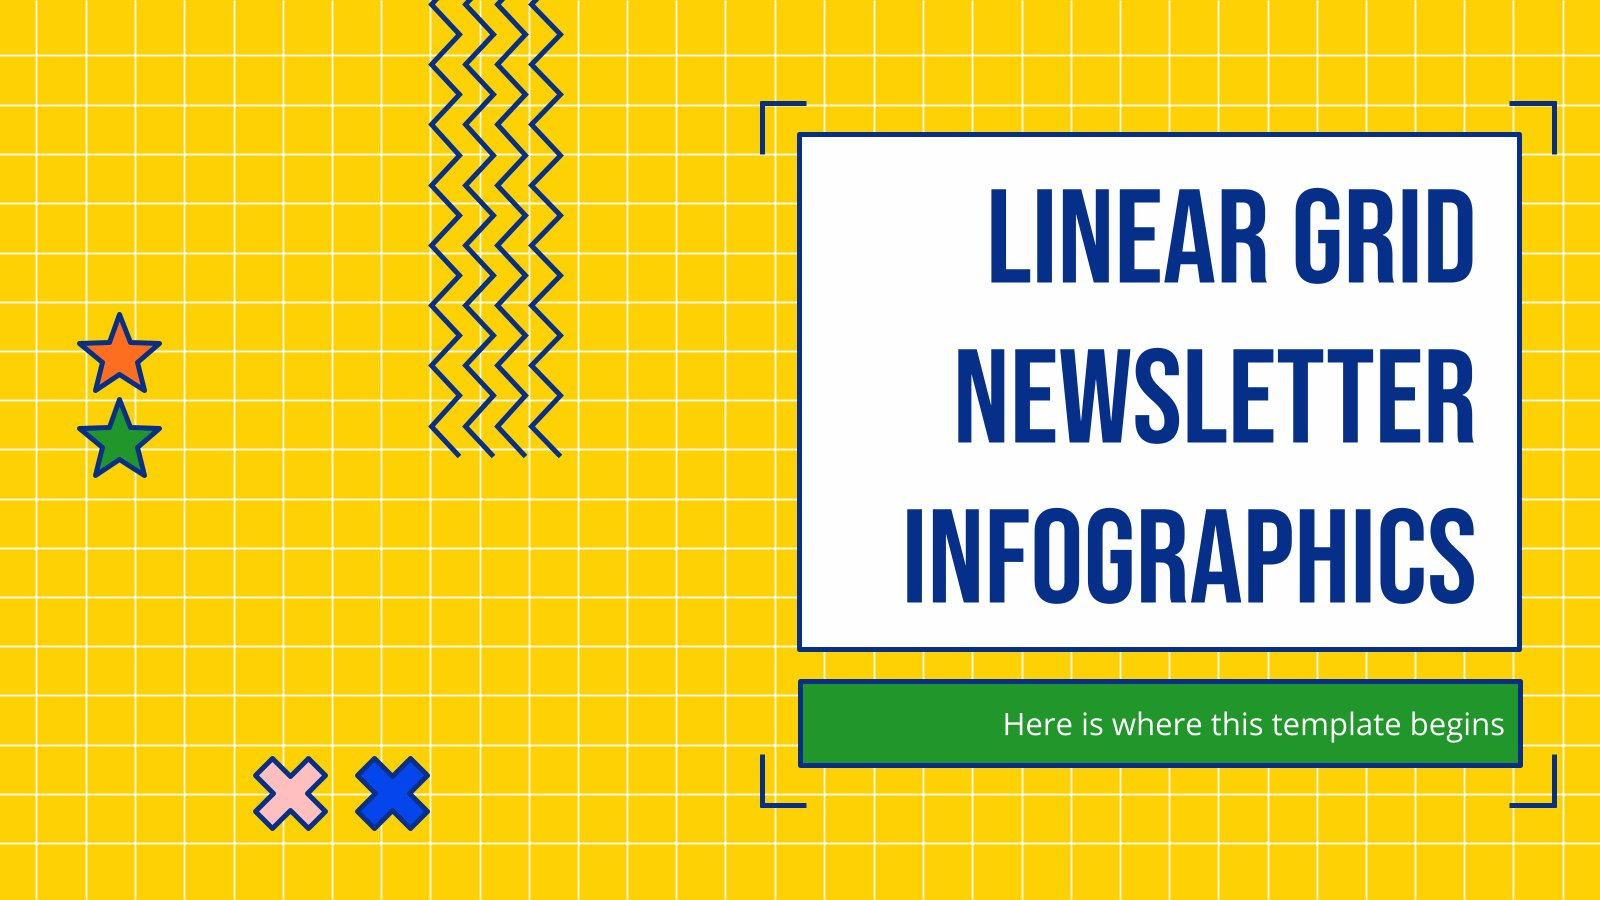 Linear Grid Newsletter Infographics presentation template